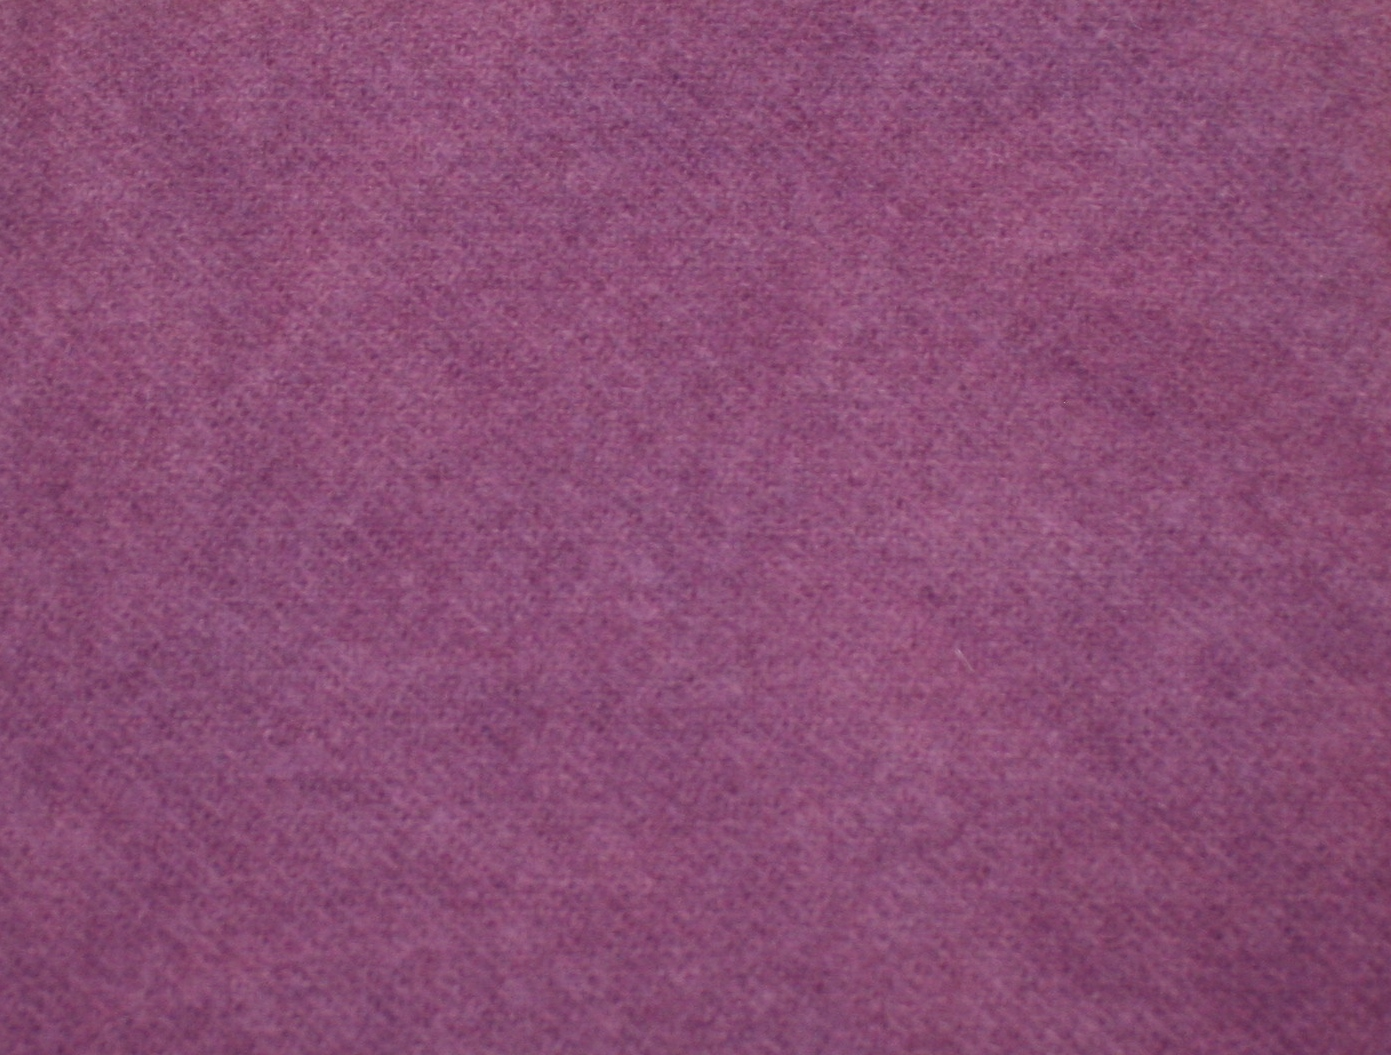 Plum Hand Dyed 100% Wool Part of the Vineyard Collection